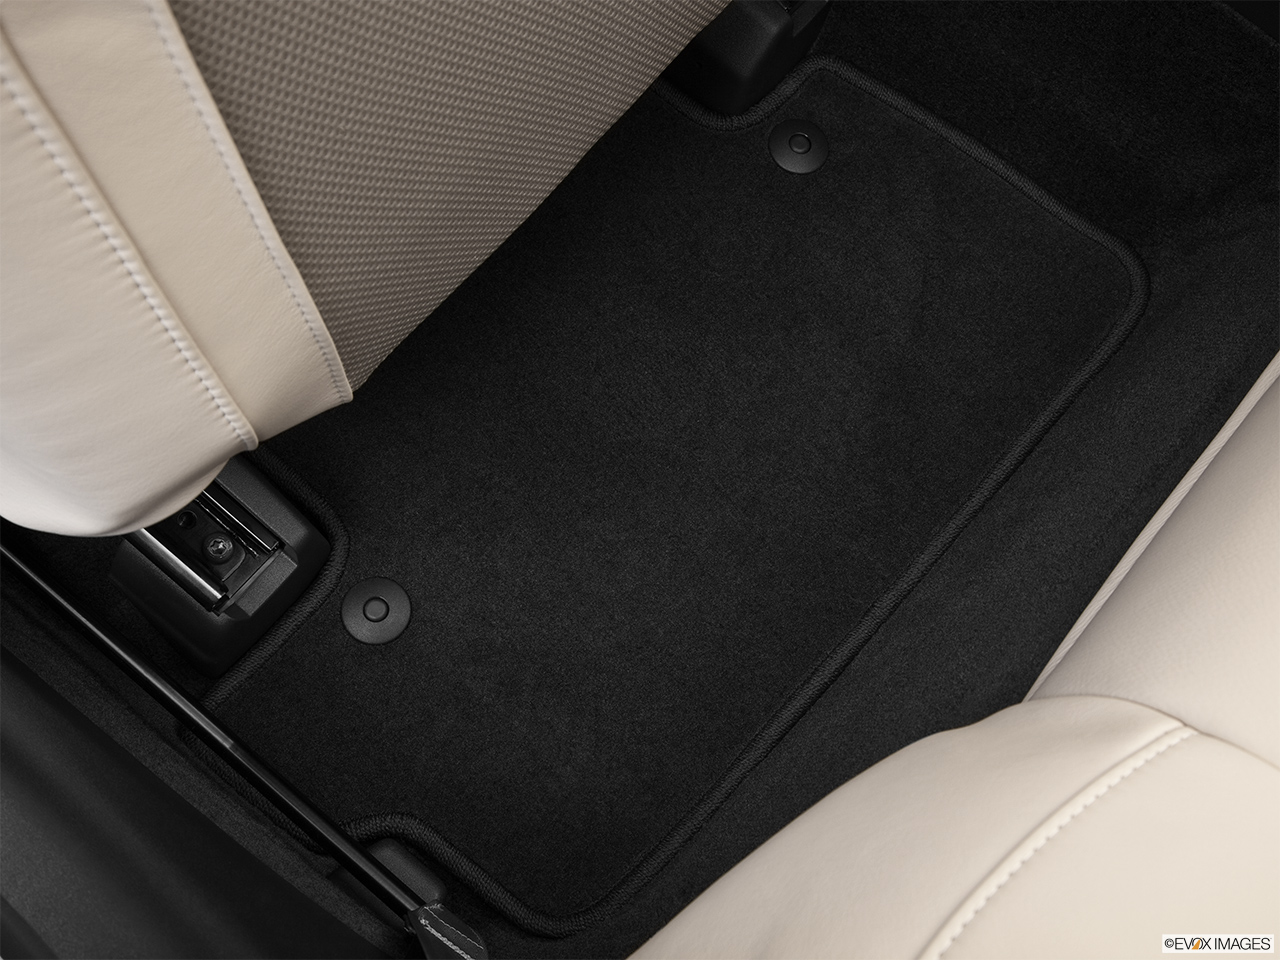 2013 Volvo C70 T5 Platinum Rear driver's side floor mat. Mid-seat level from outside looking in.